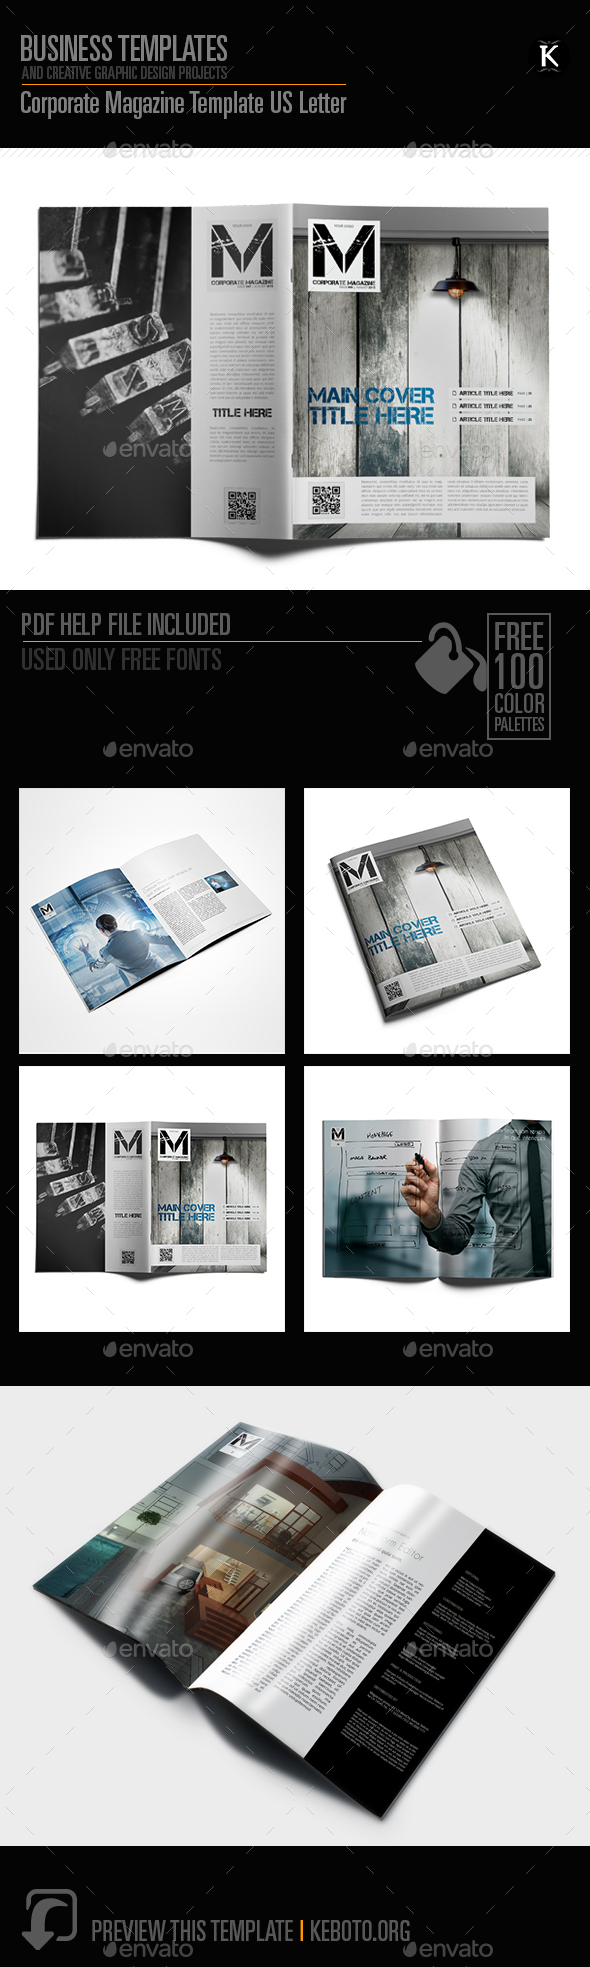 Corporate Magazine Template US Letter - Magazines Print Templates